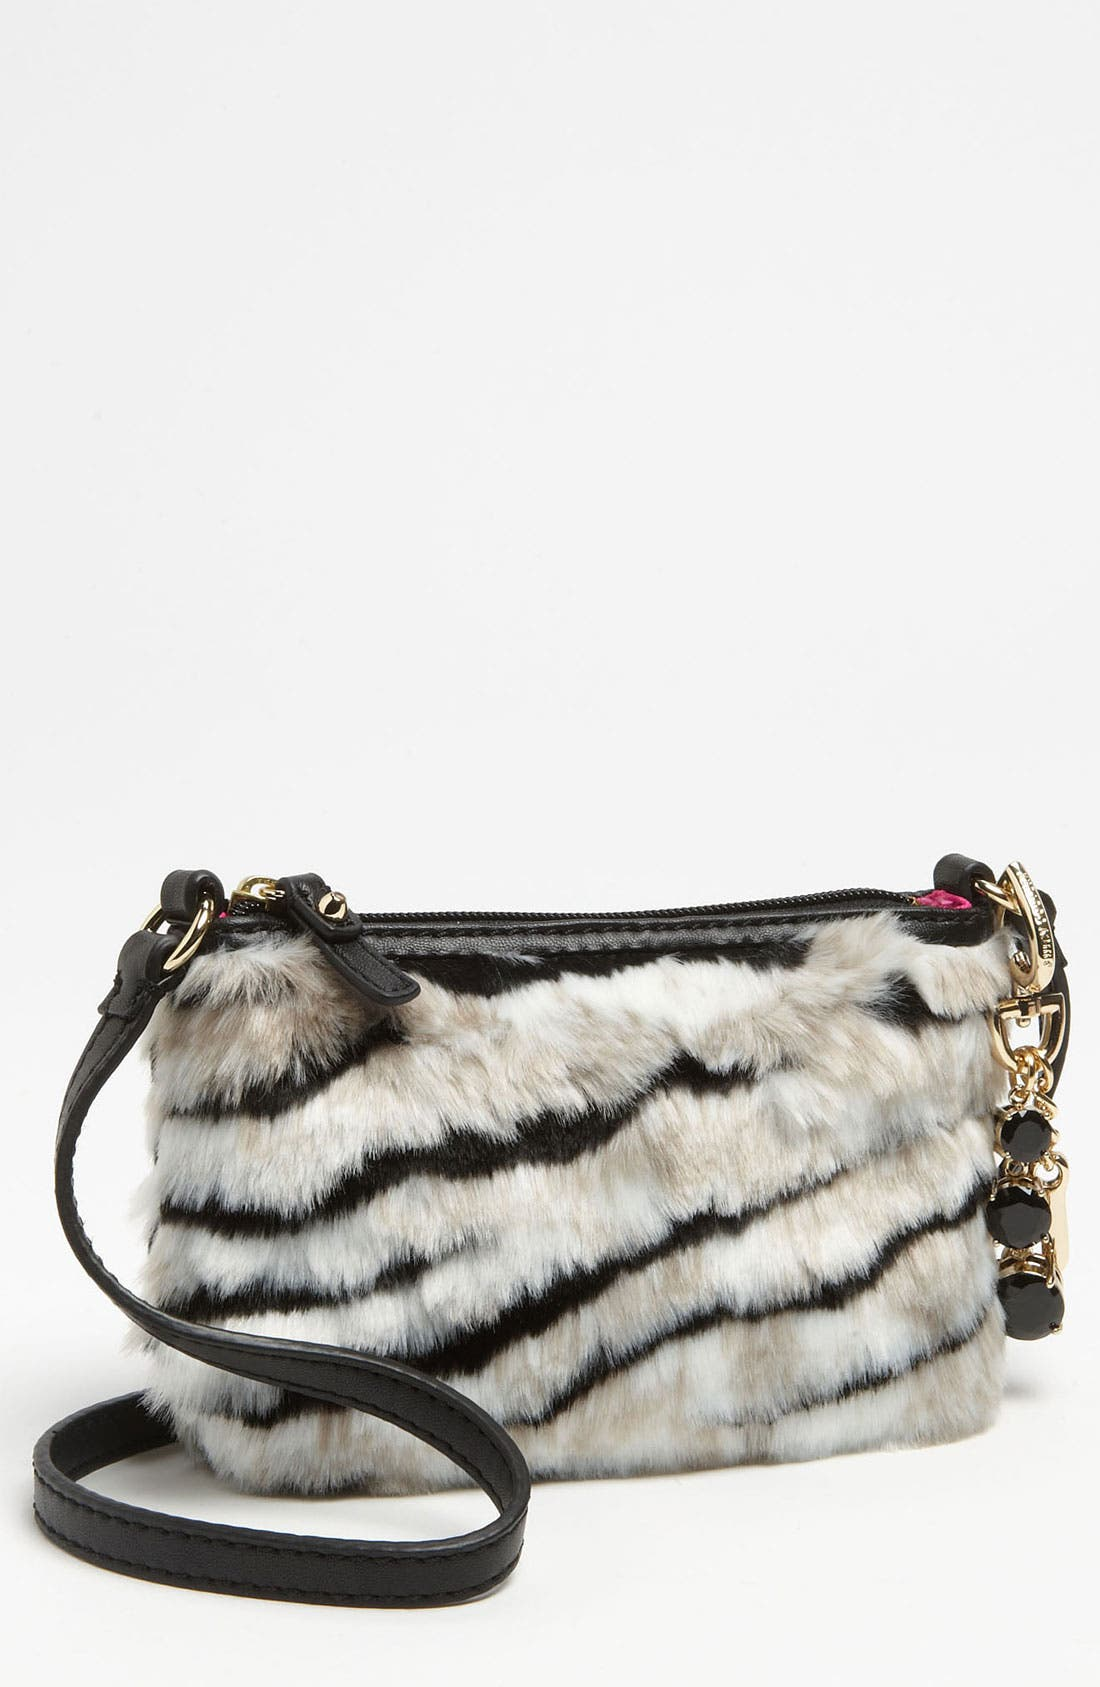 Alternate Image 1 Selected - Juicy Couture 'Louisa' Faux Fur Crossbody Bag (Girls)